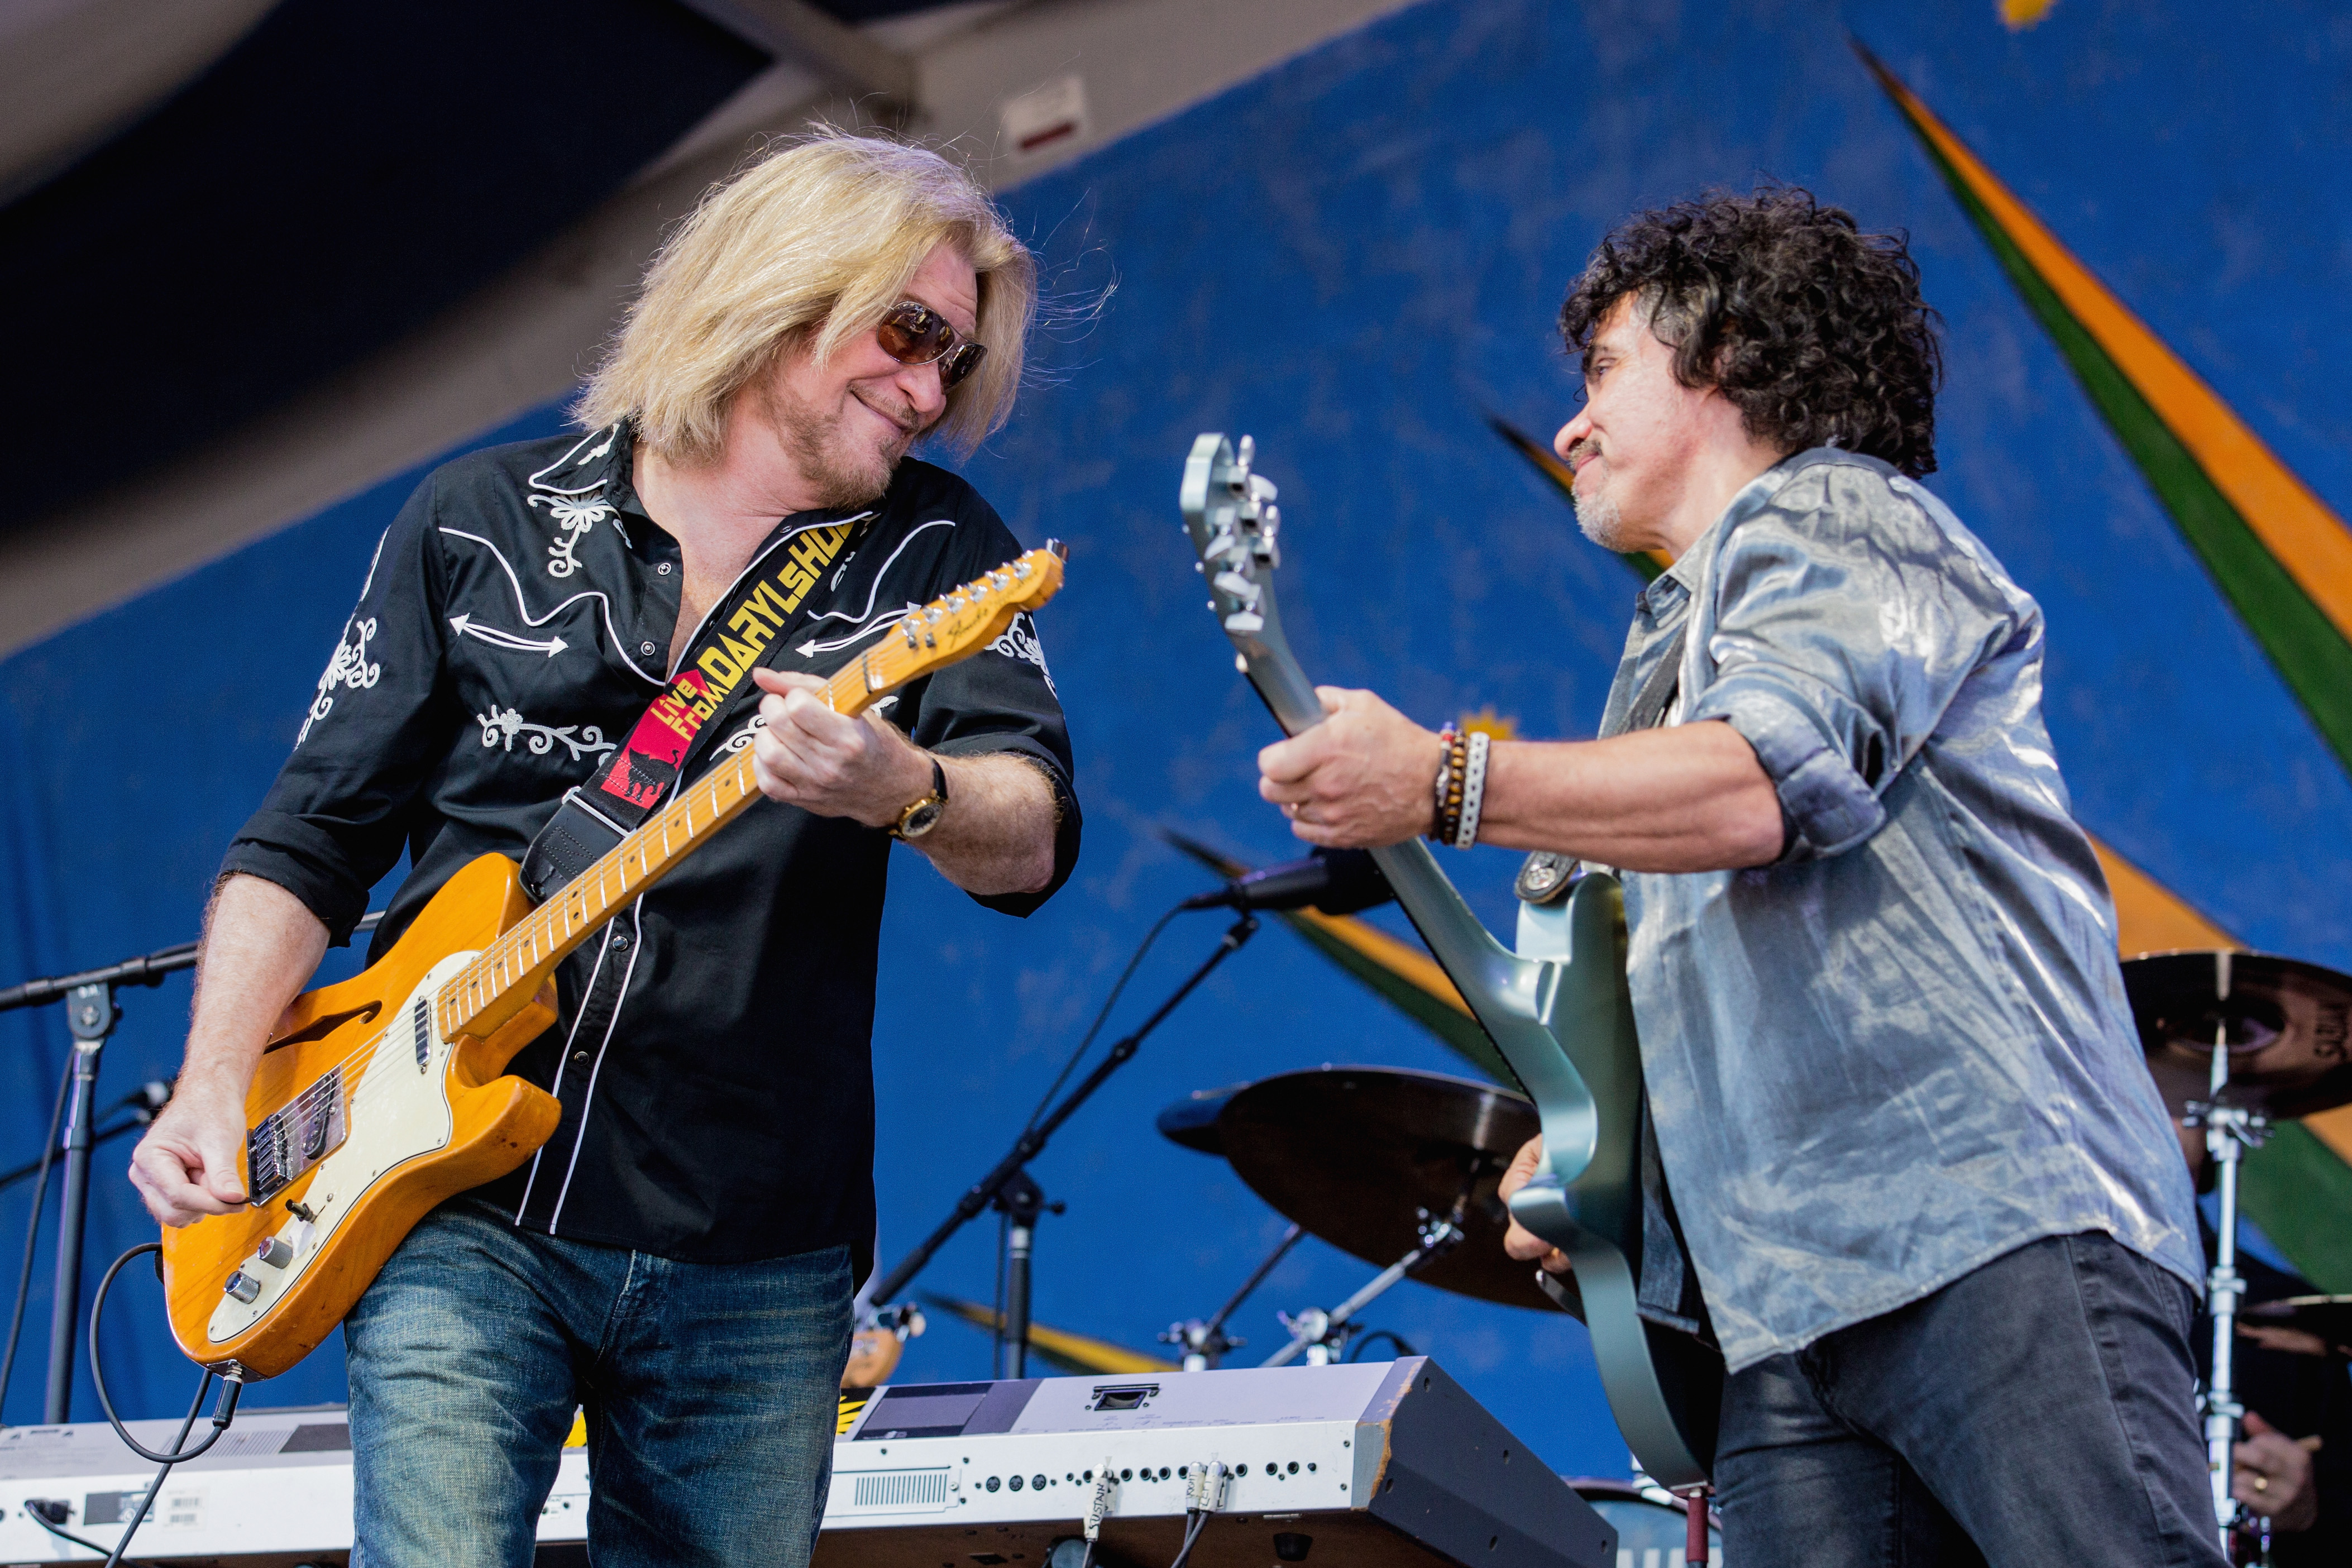 (L-R) Daryl Hall and John Oates of Haul and Oates performs during the 2013 New Orleans Jazz & Heritage Music Festival at Fair Grounds Race Course on May 5, 2013 in New Orleans, Louisiana.